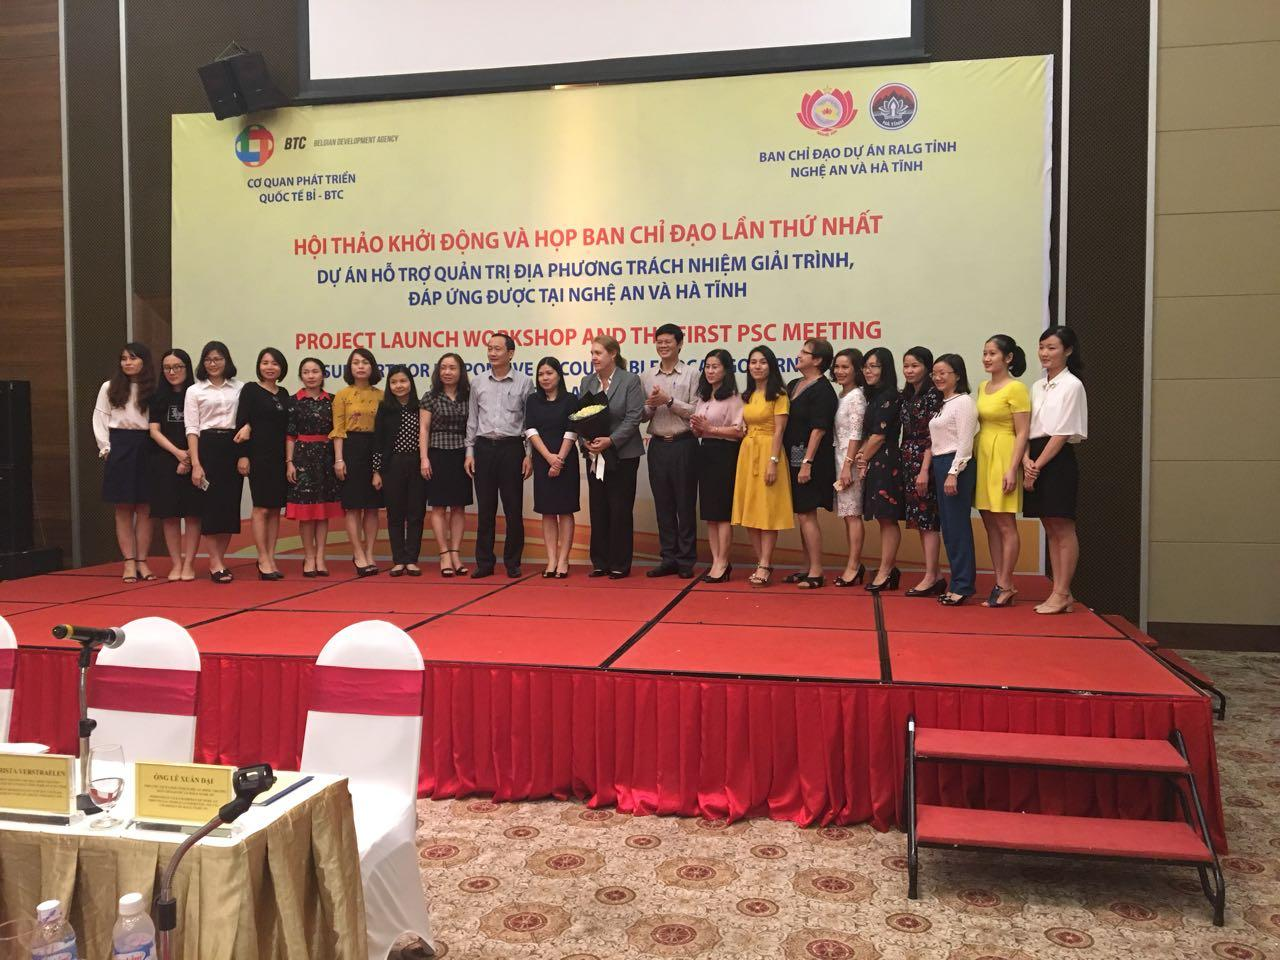 First joint project workshop and PSC in Vinh